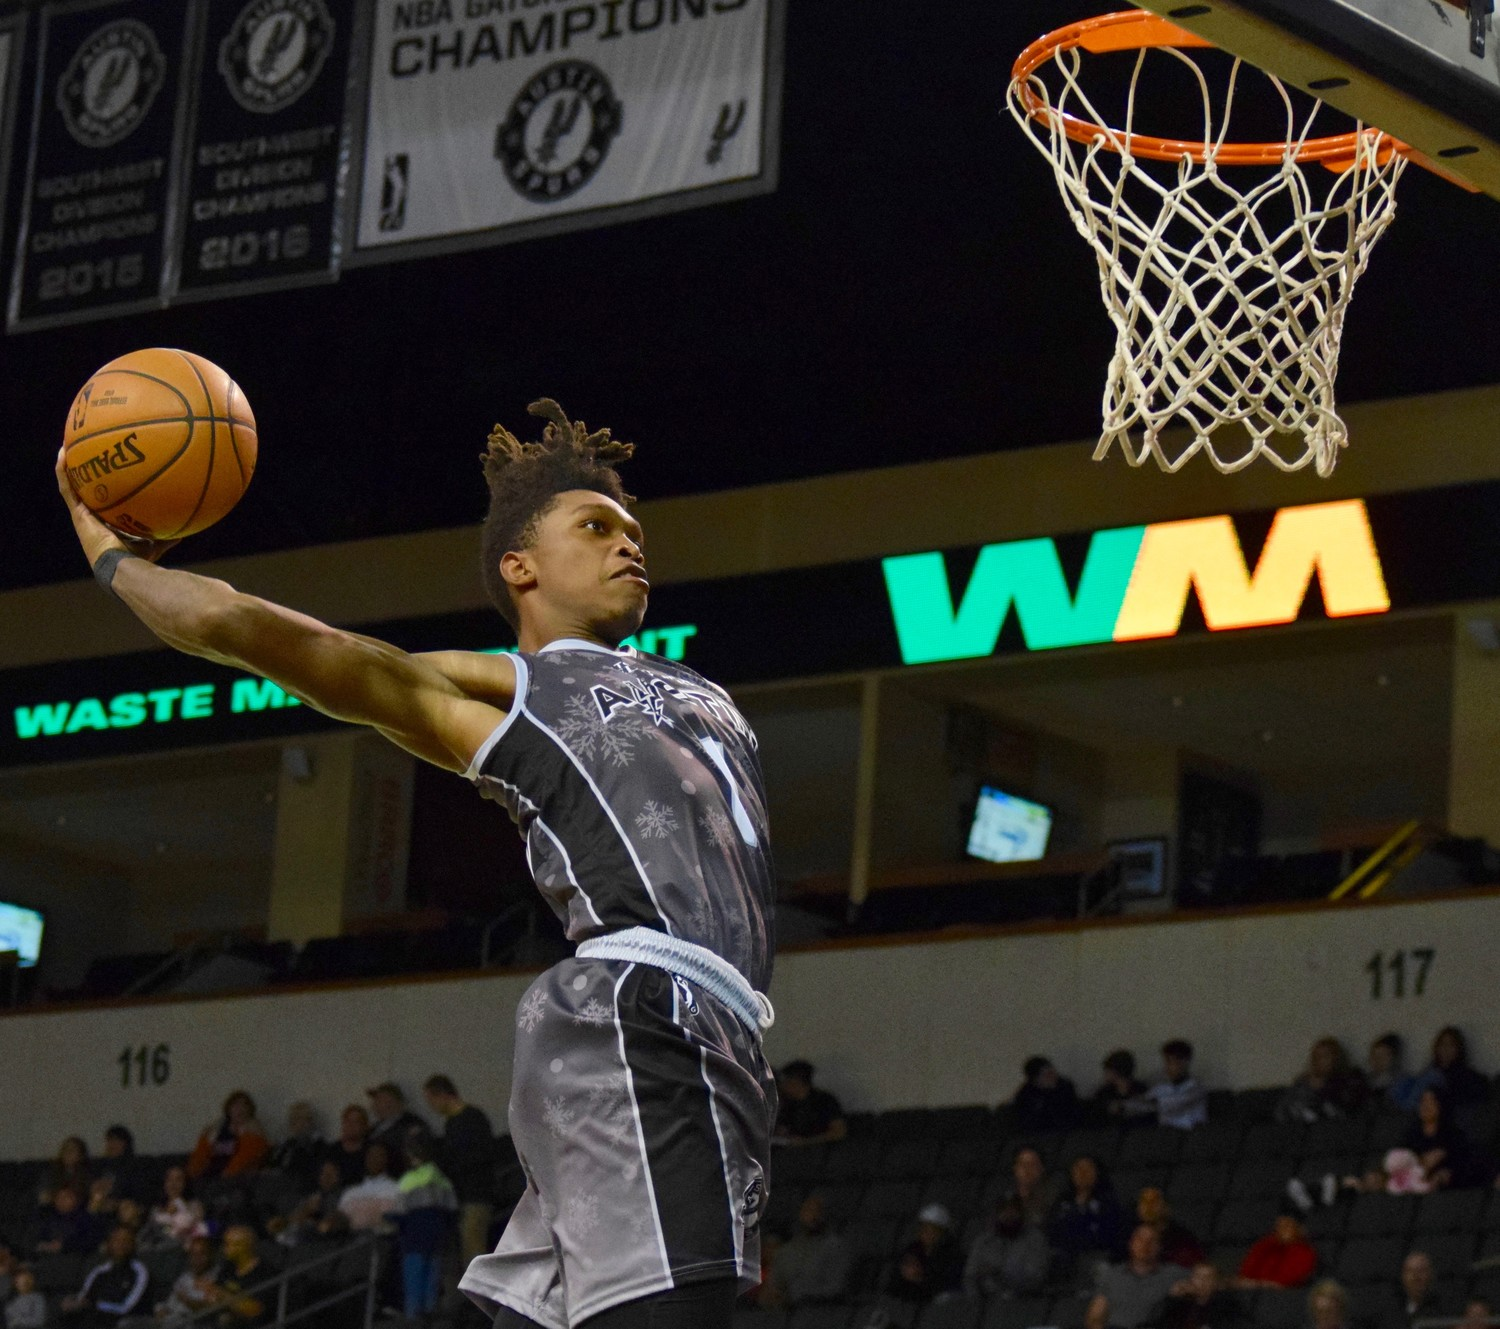 Lonnie Walker IV scored 16 points and the Austin Spurs beat the Iowa Wolves 118-116 on Saturday night.